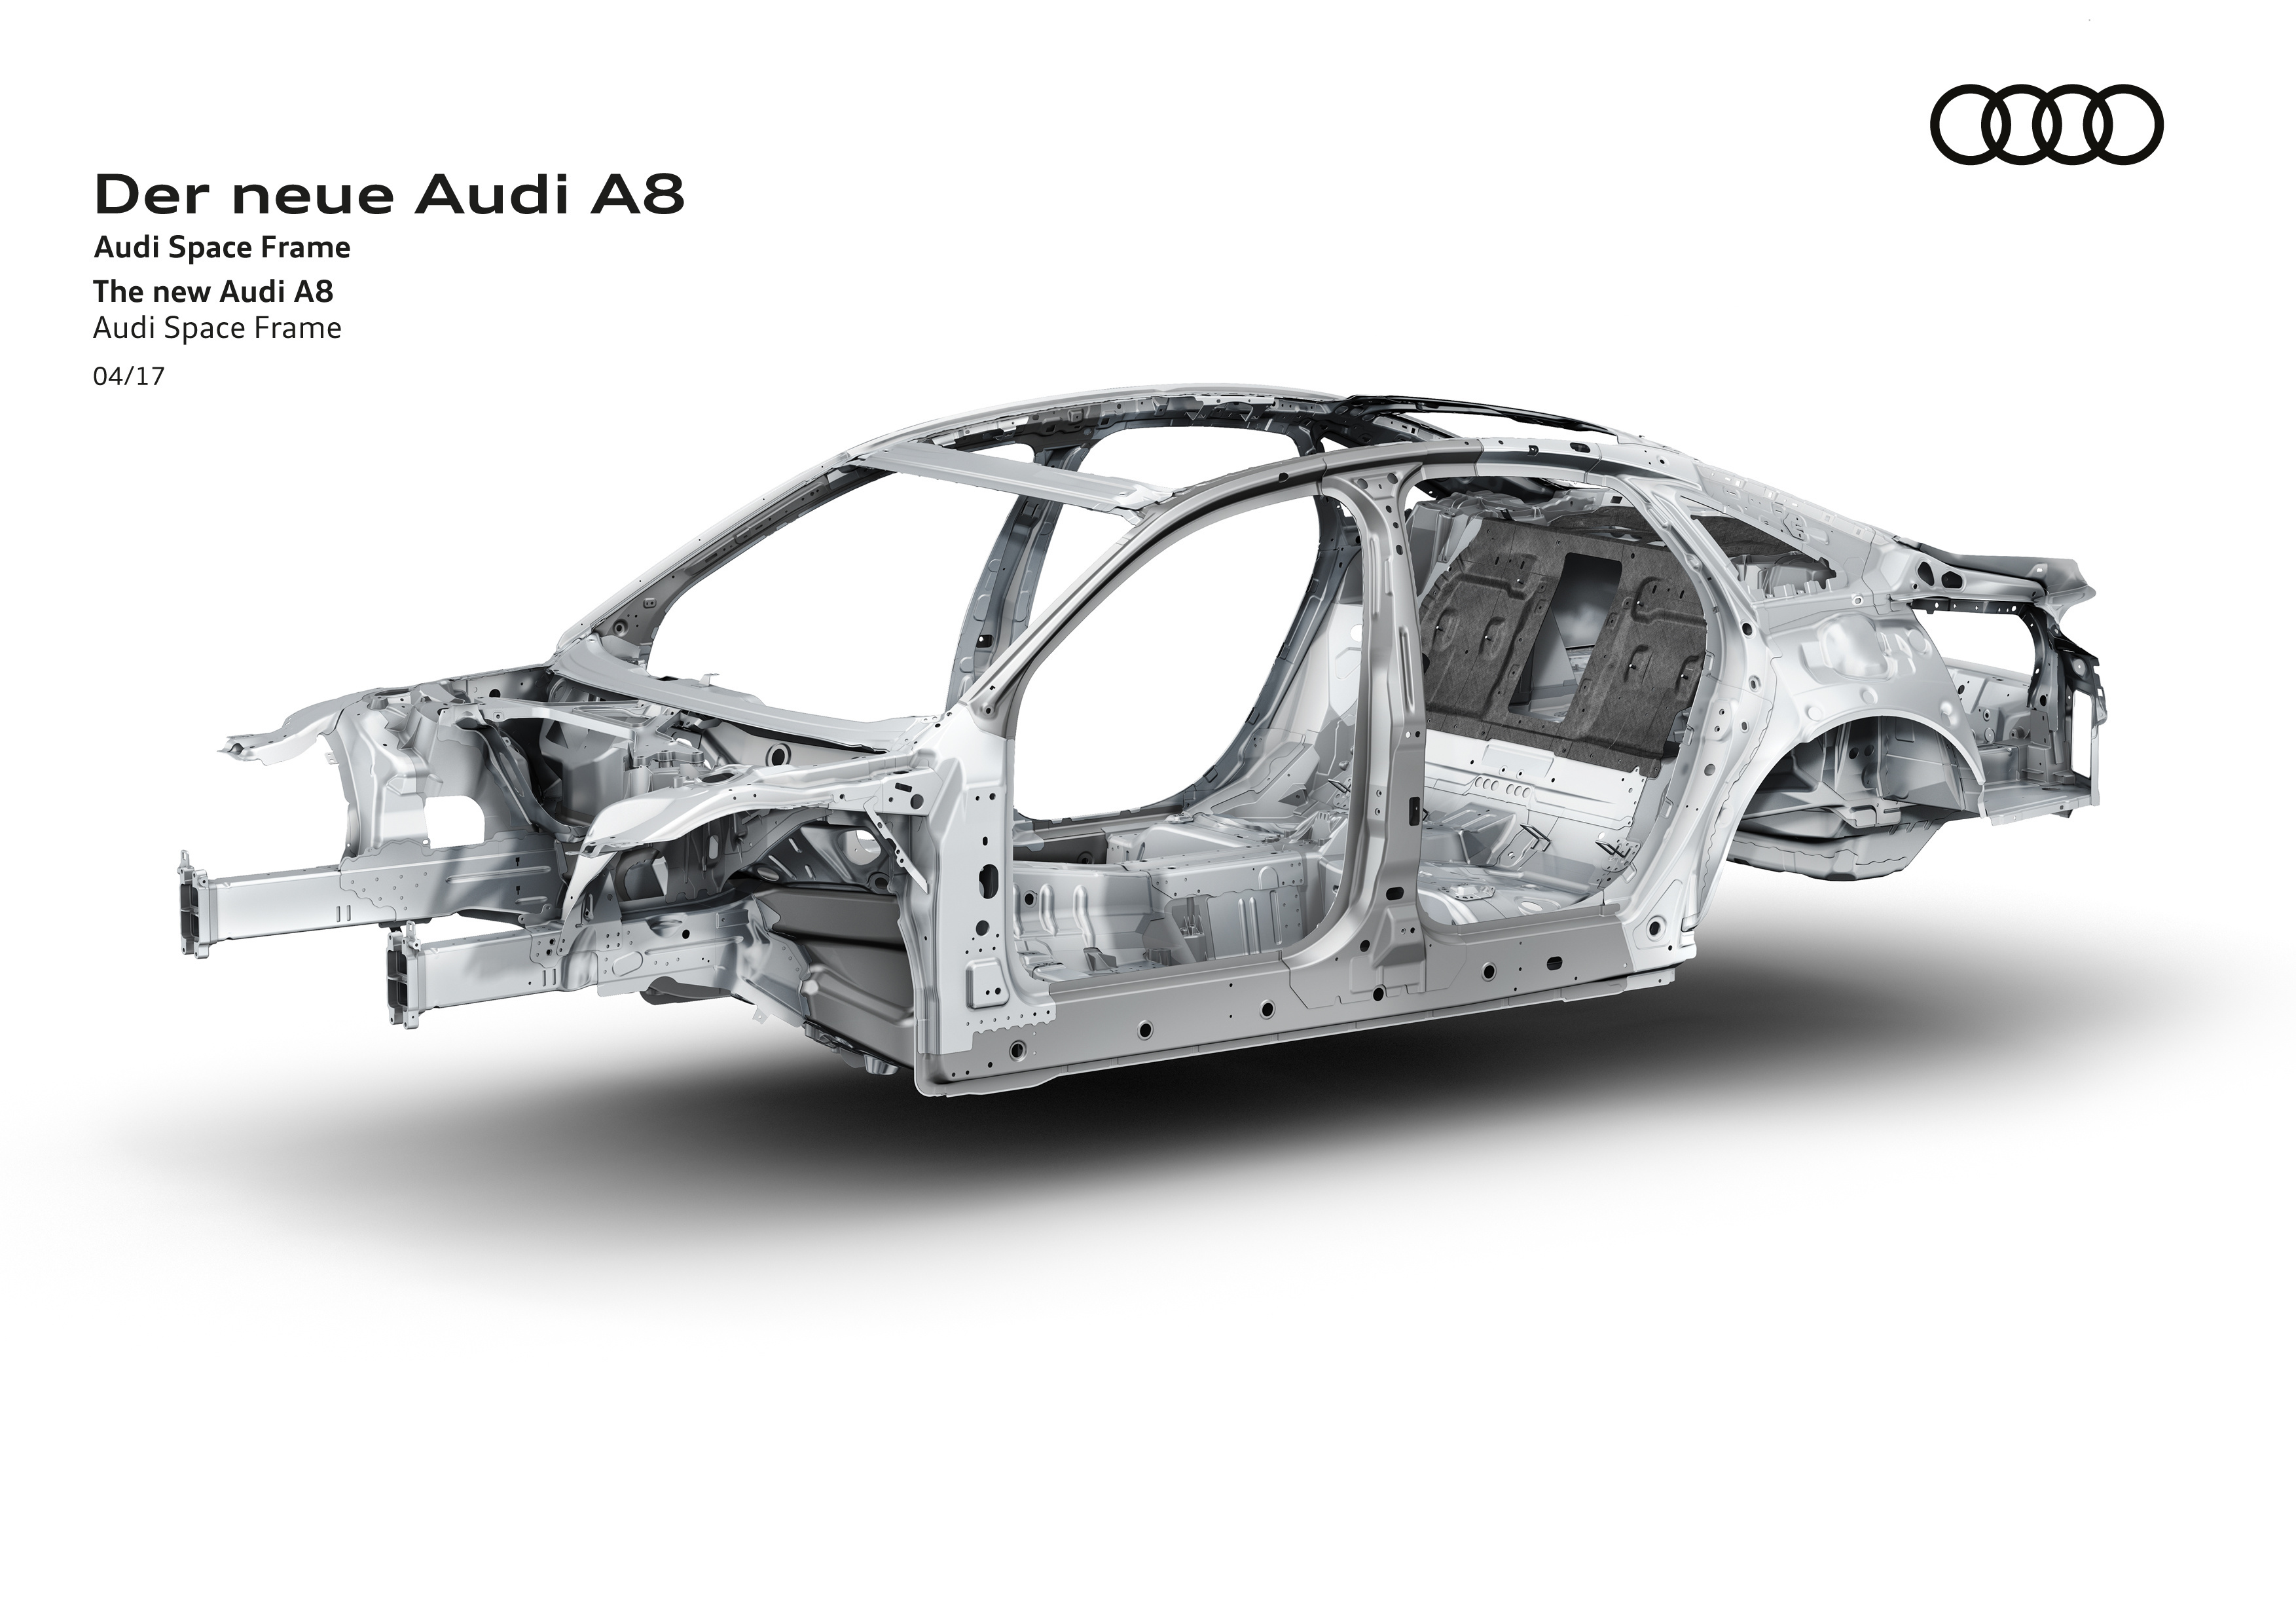 D5 Audi A8 to use multi-material space frame chassis Paul Tan ...